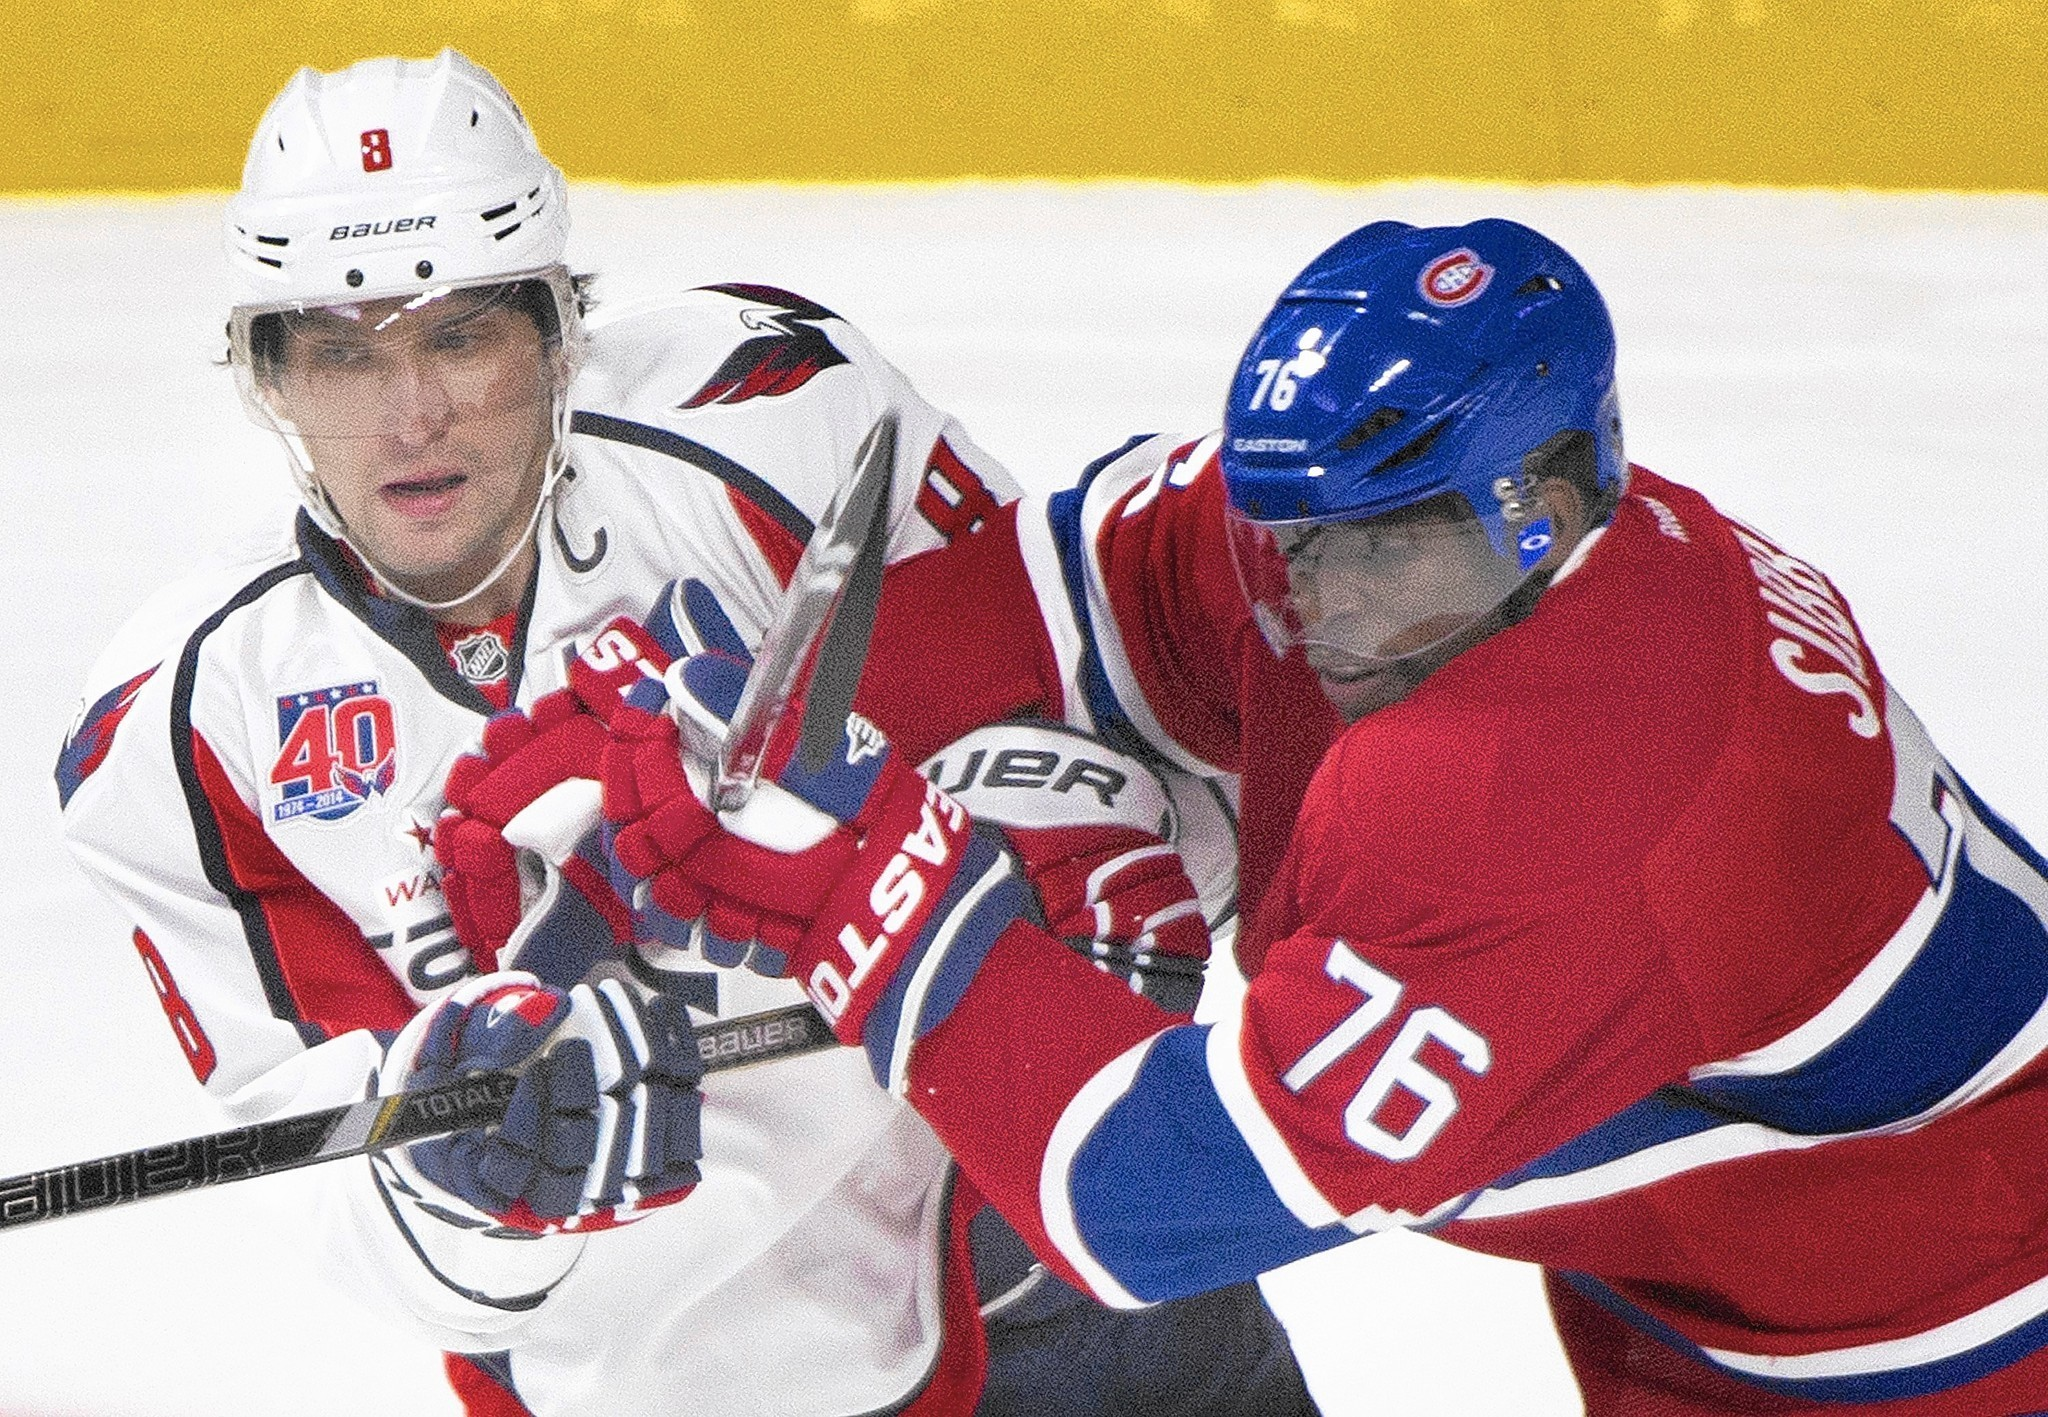 183e36cf8 NHL preview: Capitals make changes, Ovechkin still the key - Capital ...